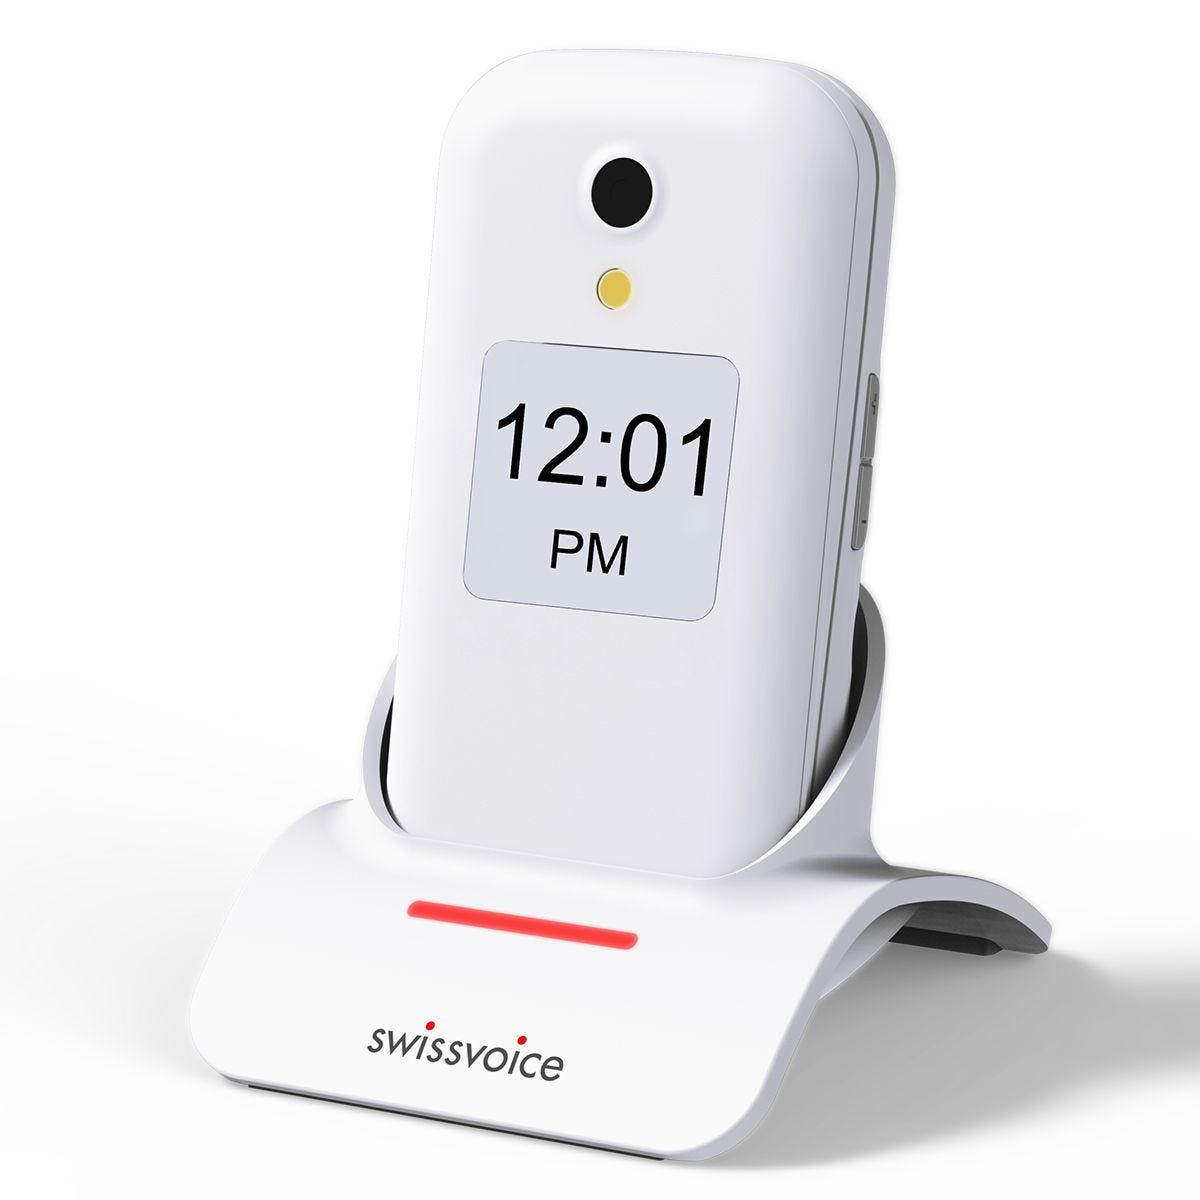 Swissvoice D28 Mobile Phone with Base - White